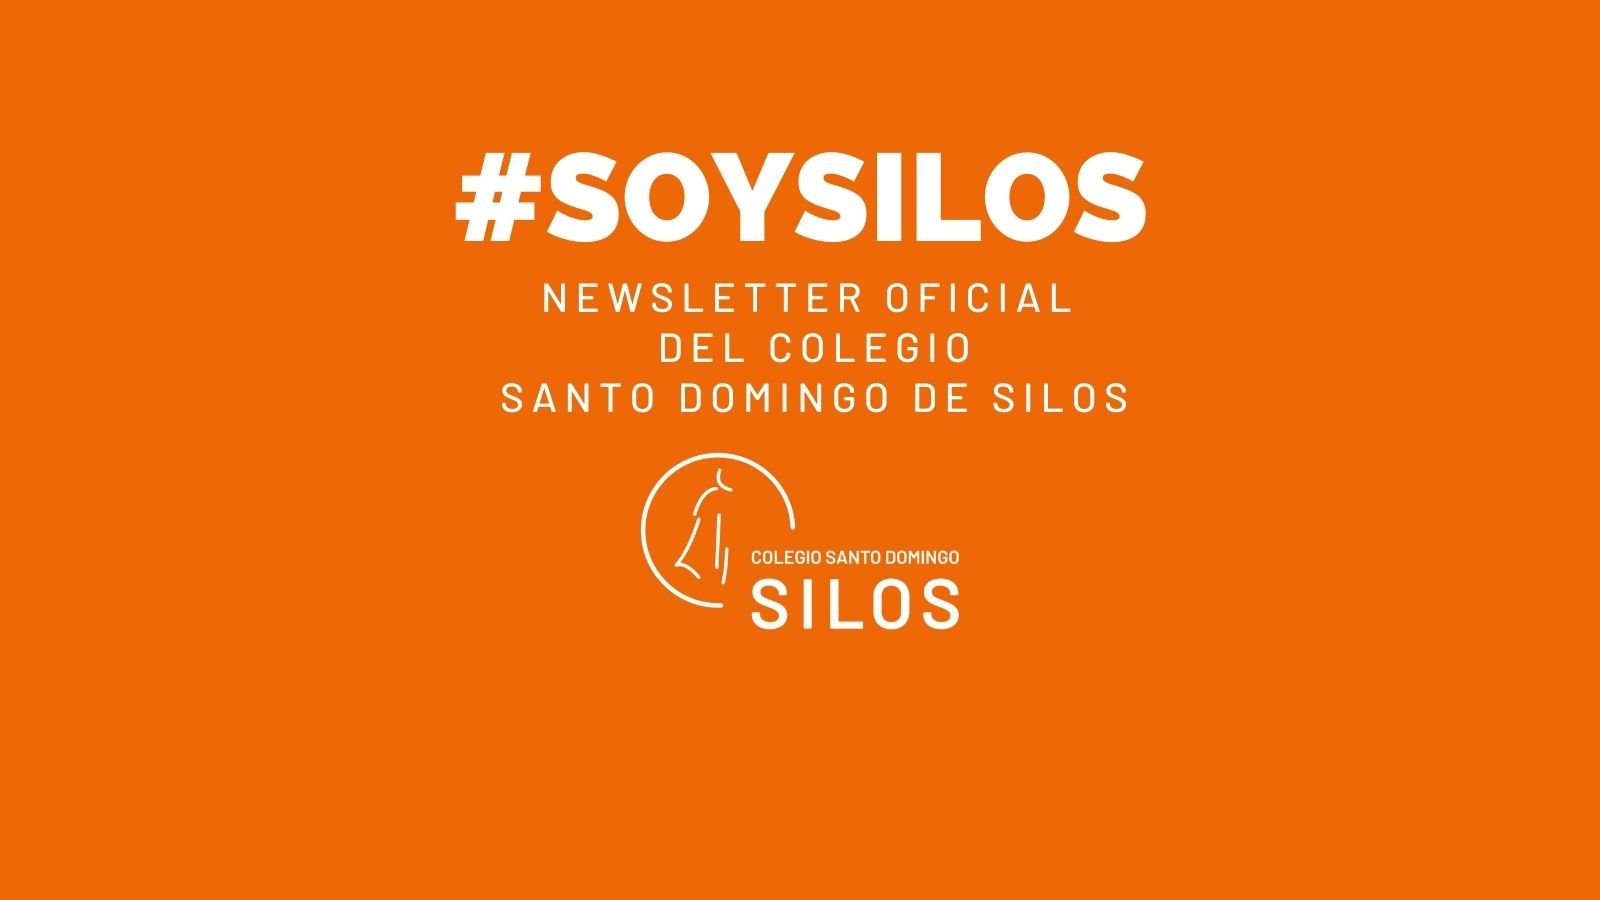 Newsletter #SOYSILOS